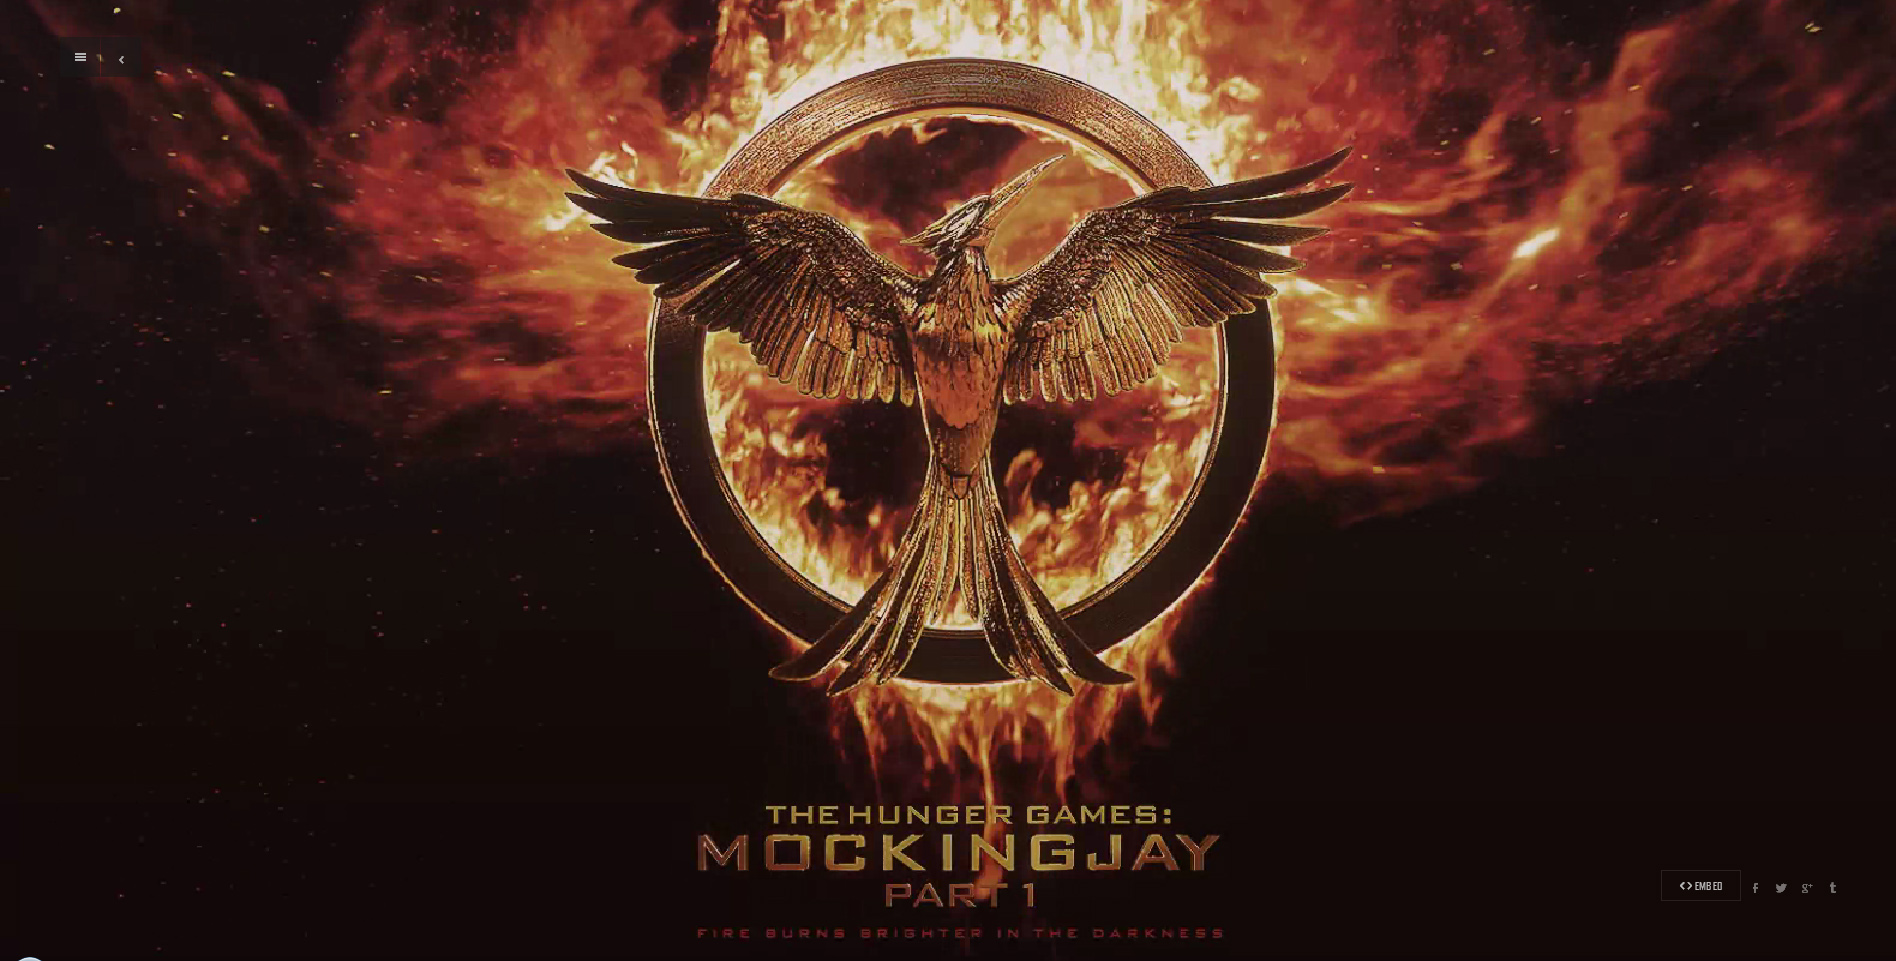 THE HUNGER GAMES: MOCKINGJAY- PART 1